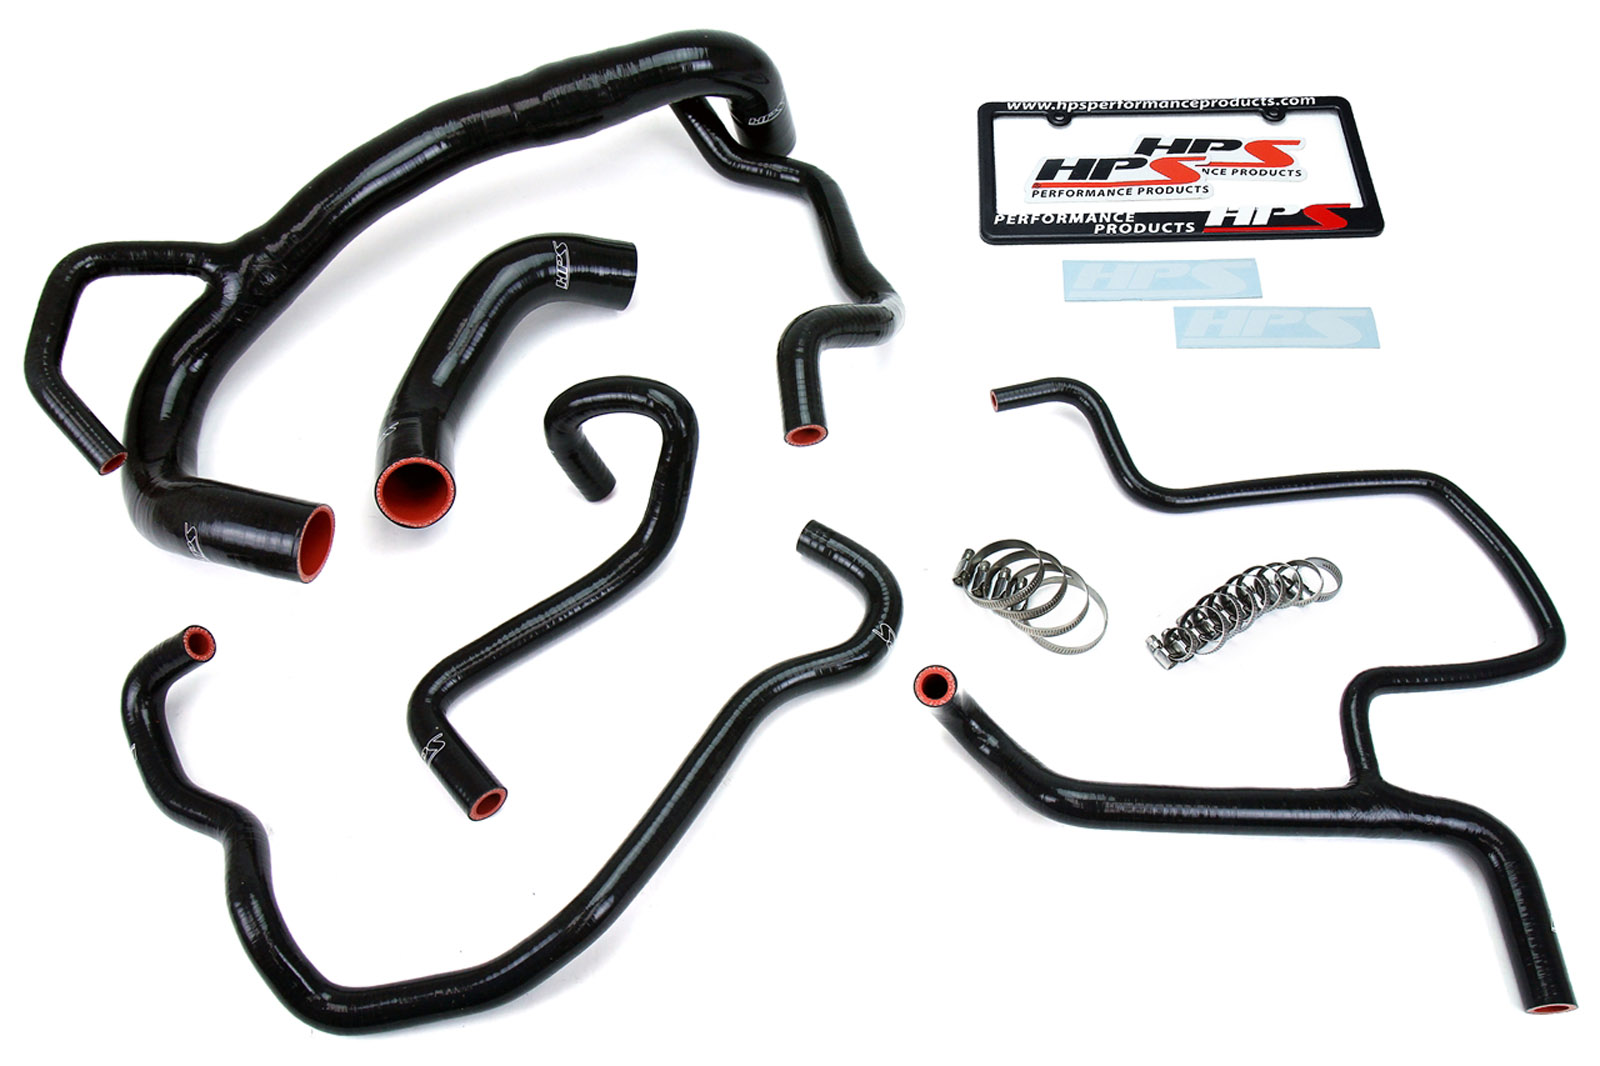 Hps Black Heater Hose Kit For 15 16 Charger R T Scat Pack